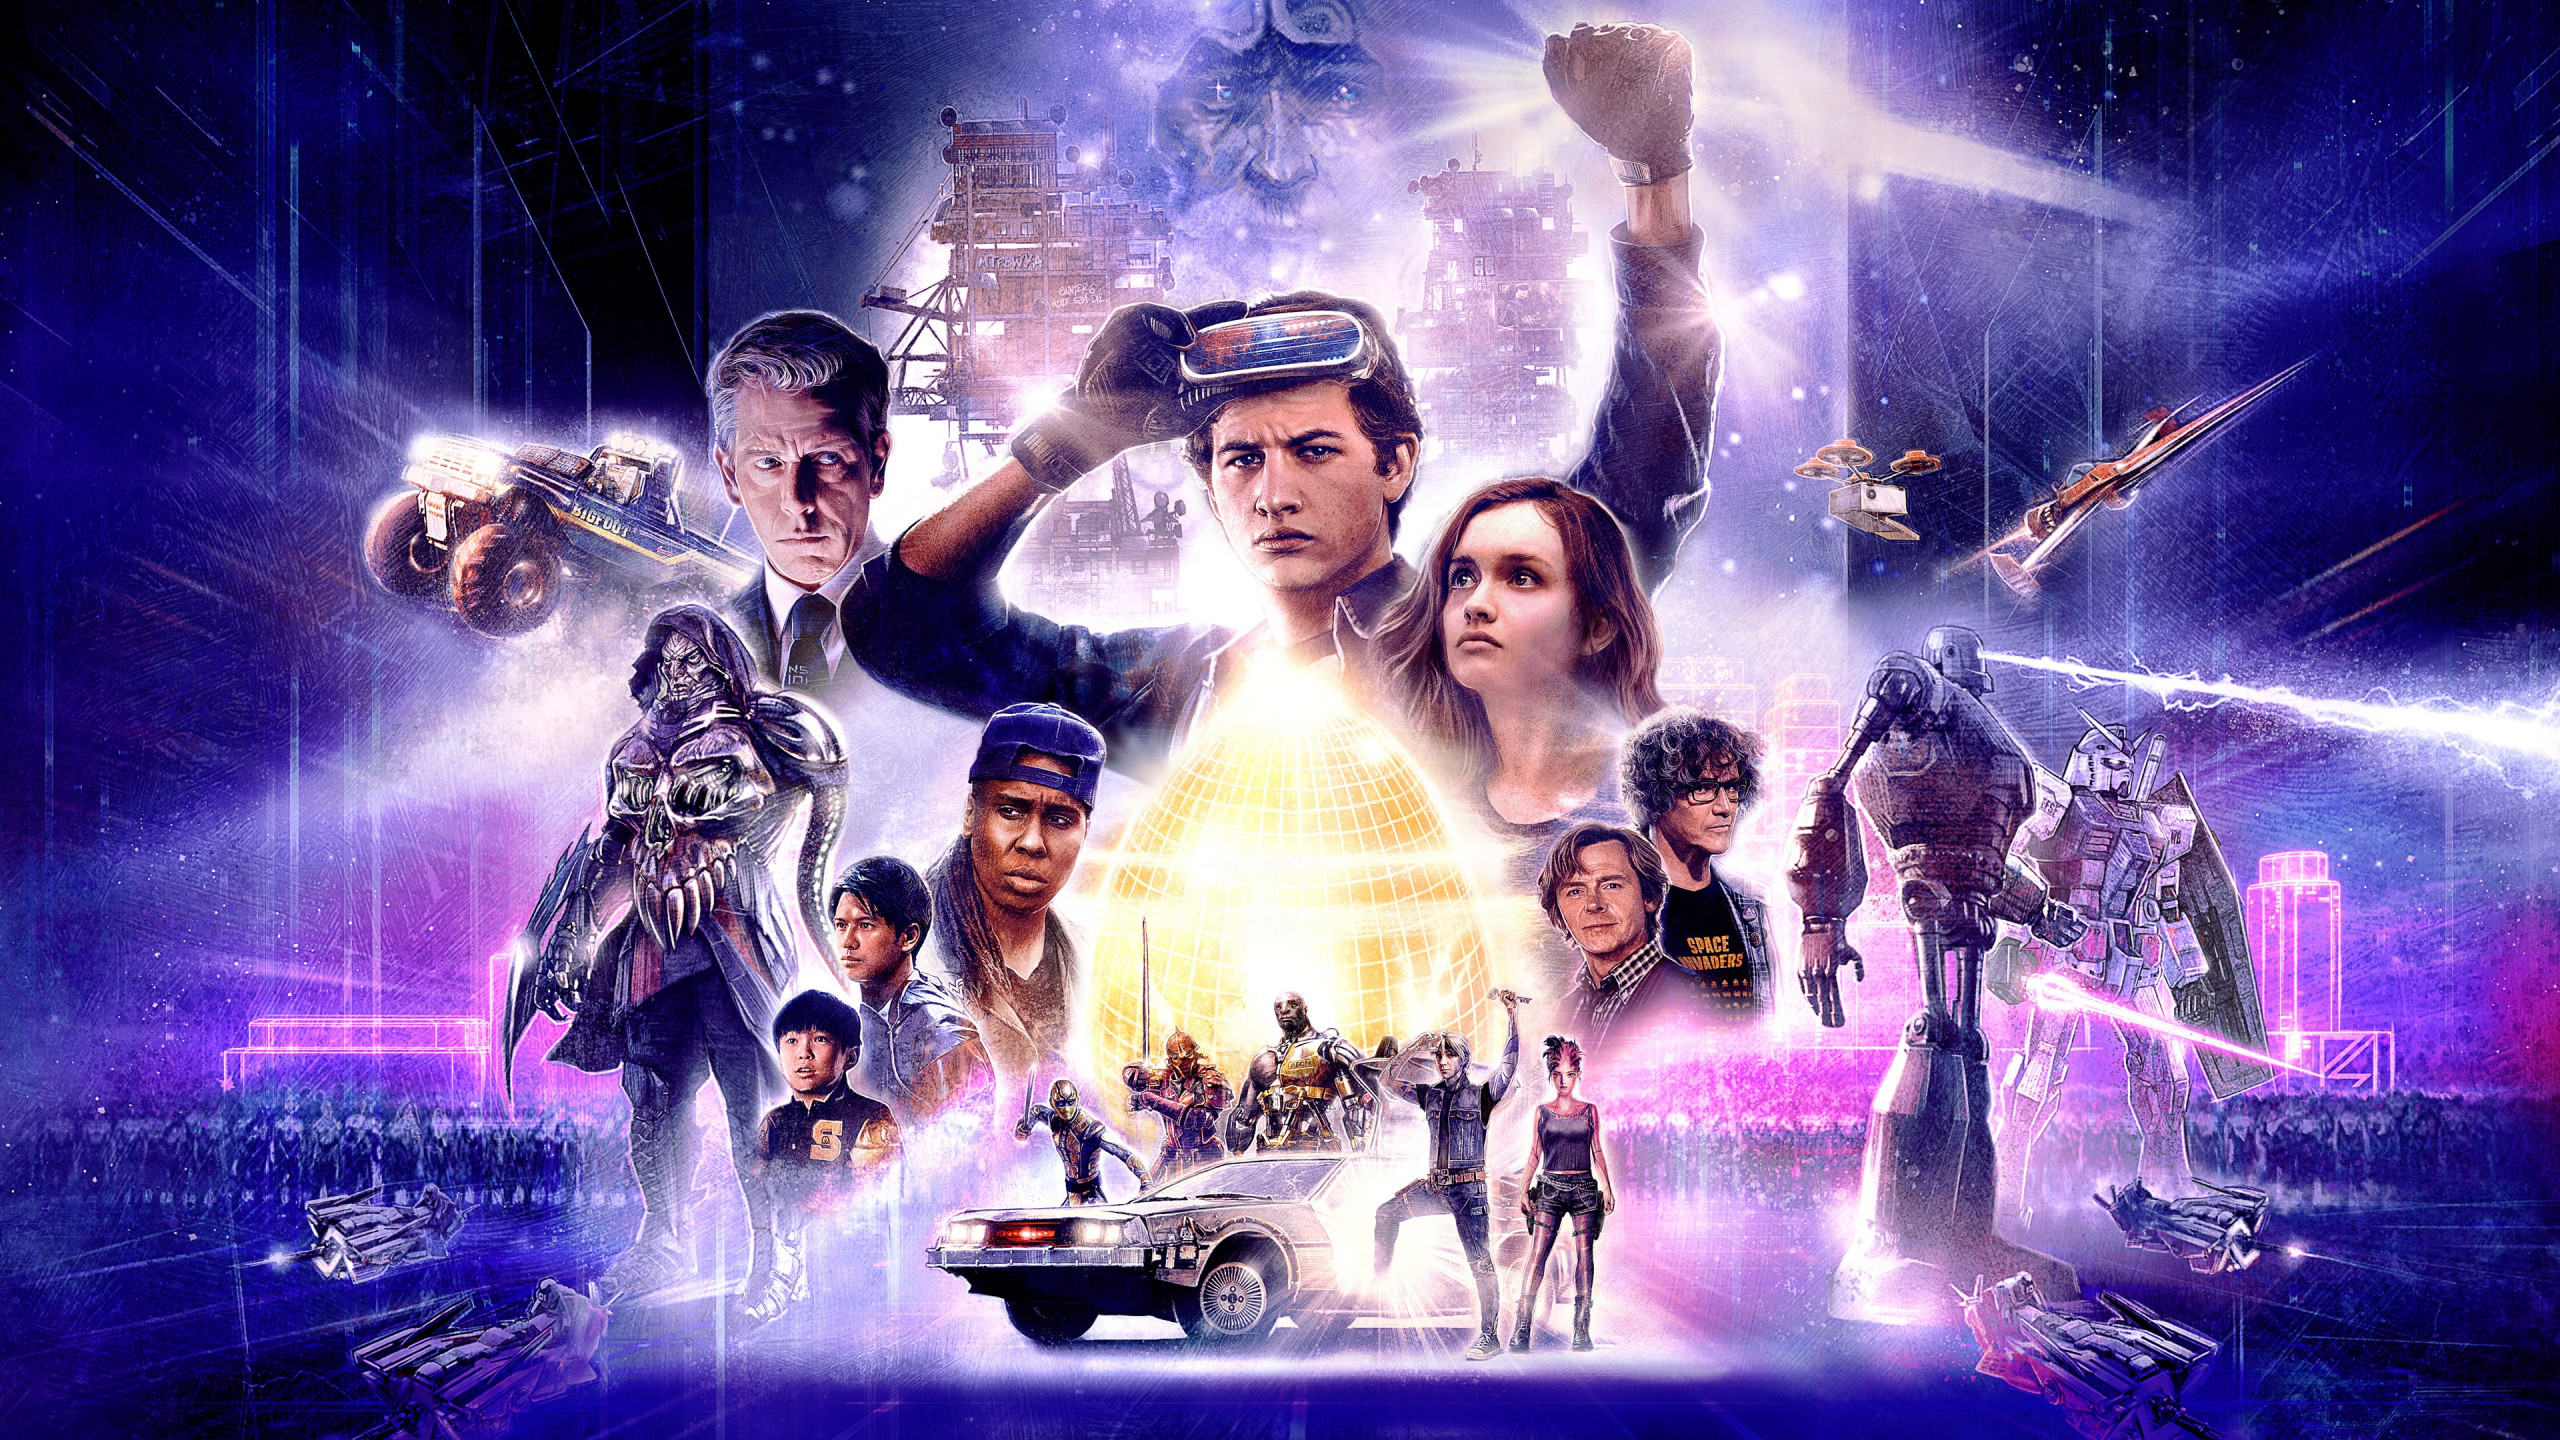 Ready Player One poster wallpaper 2560x1440